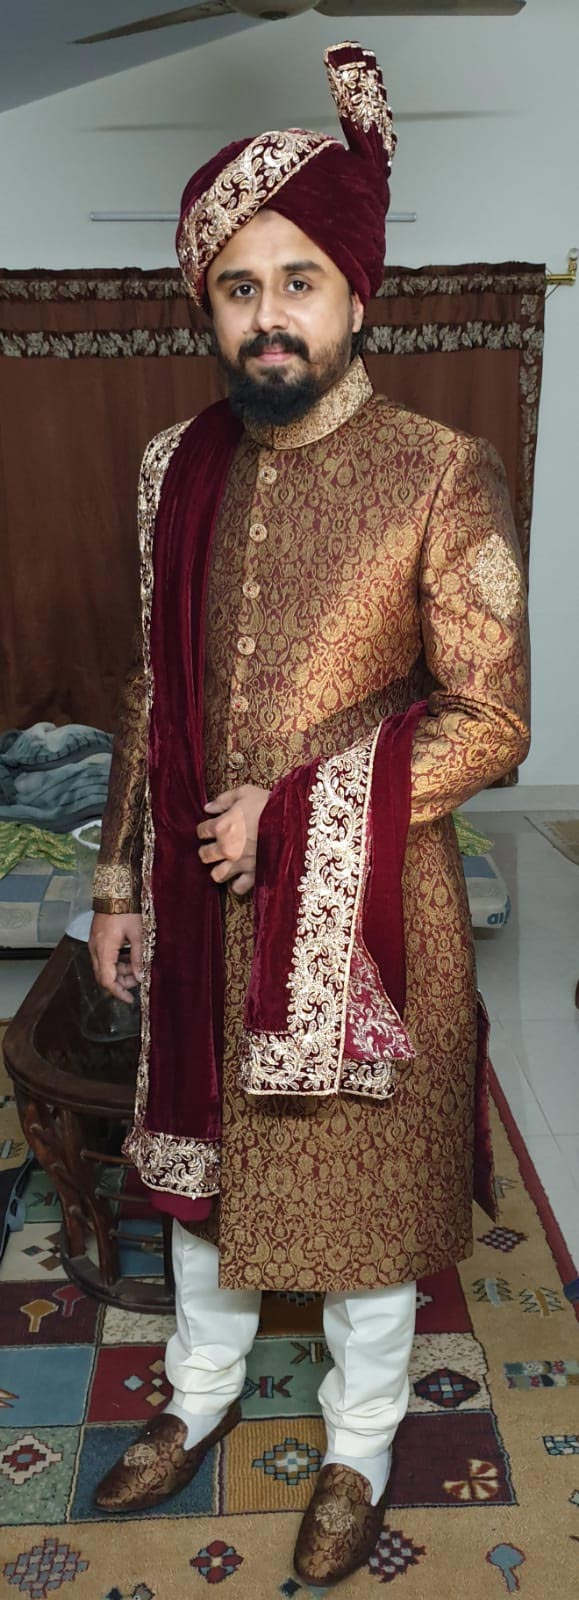 Shabeel Ahmed Khan wearing his Sherwani on the Nikah Day